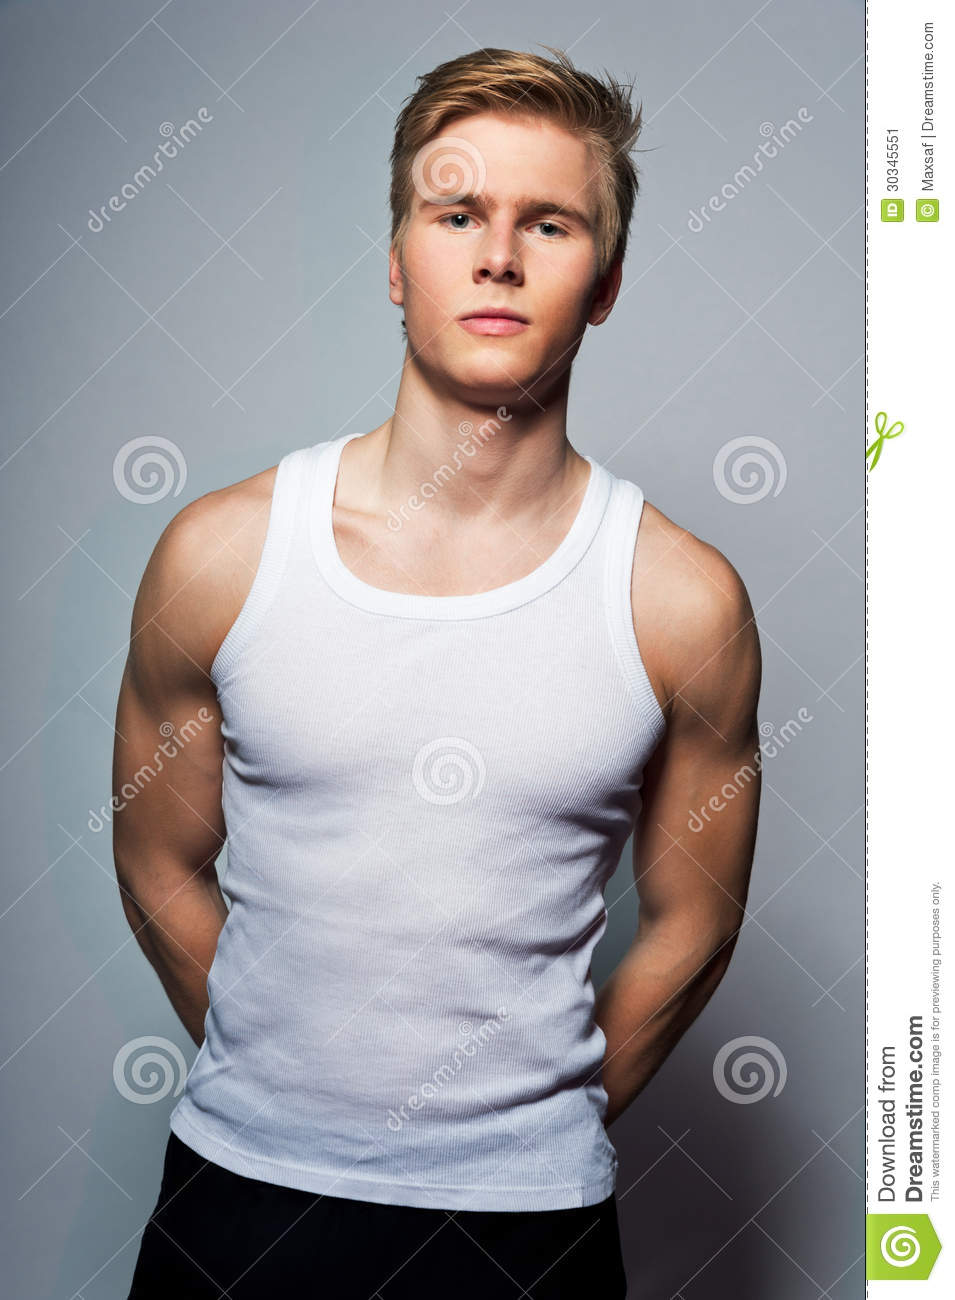 young handsome blond man wearing t shirt stock image image 30345551. Black Bedroom Furniture Sets. Home Design Ideas